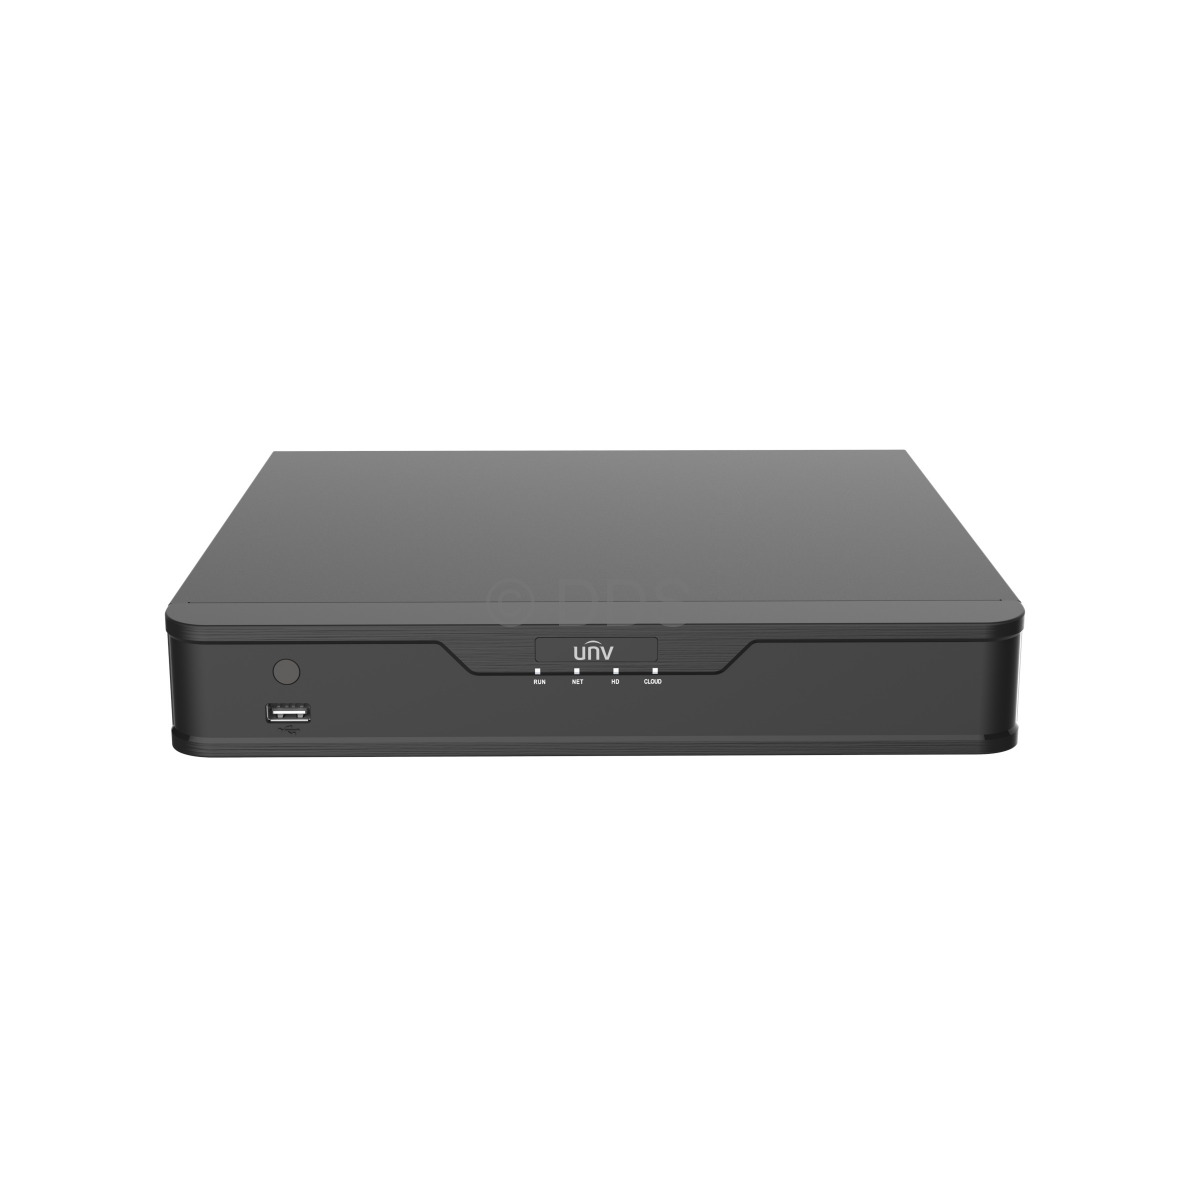 Uniview NVR301-04-P4 network video recorder Black